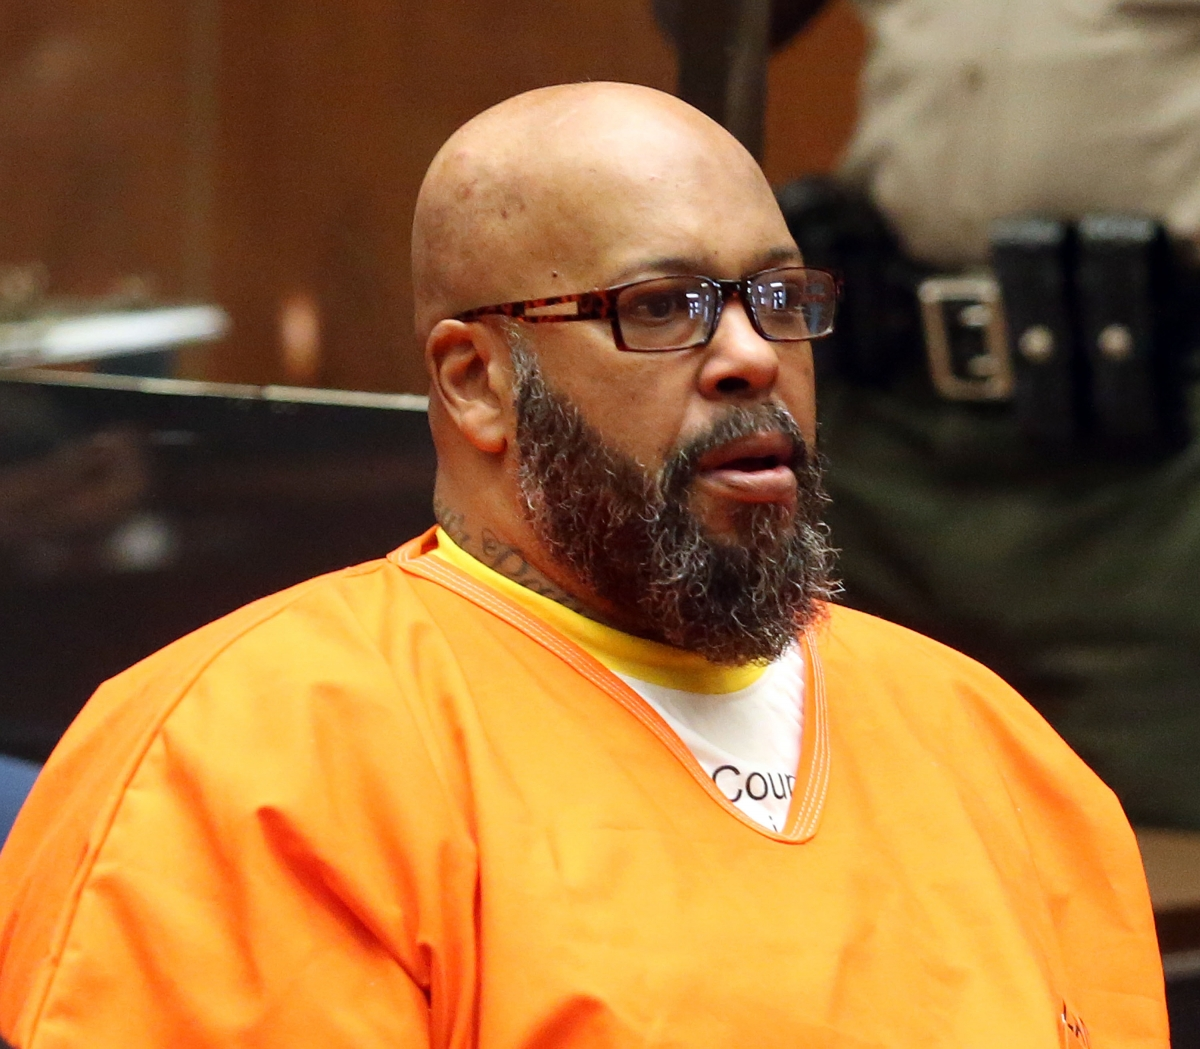 Suge Knight